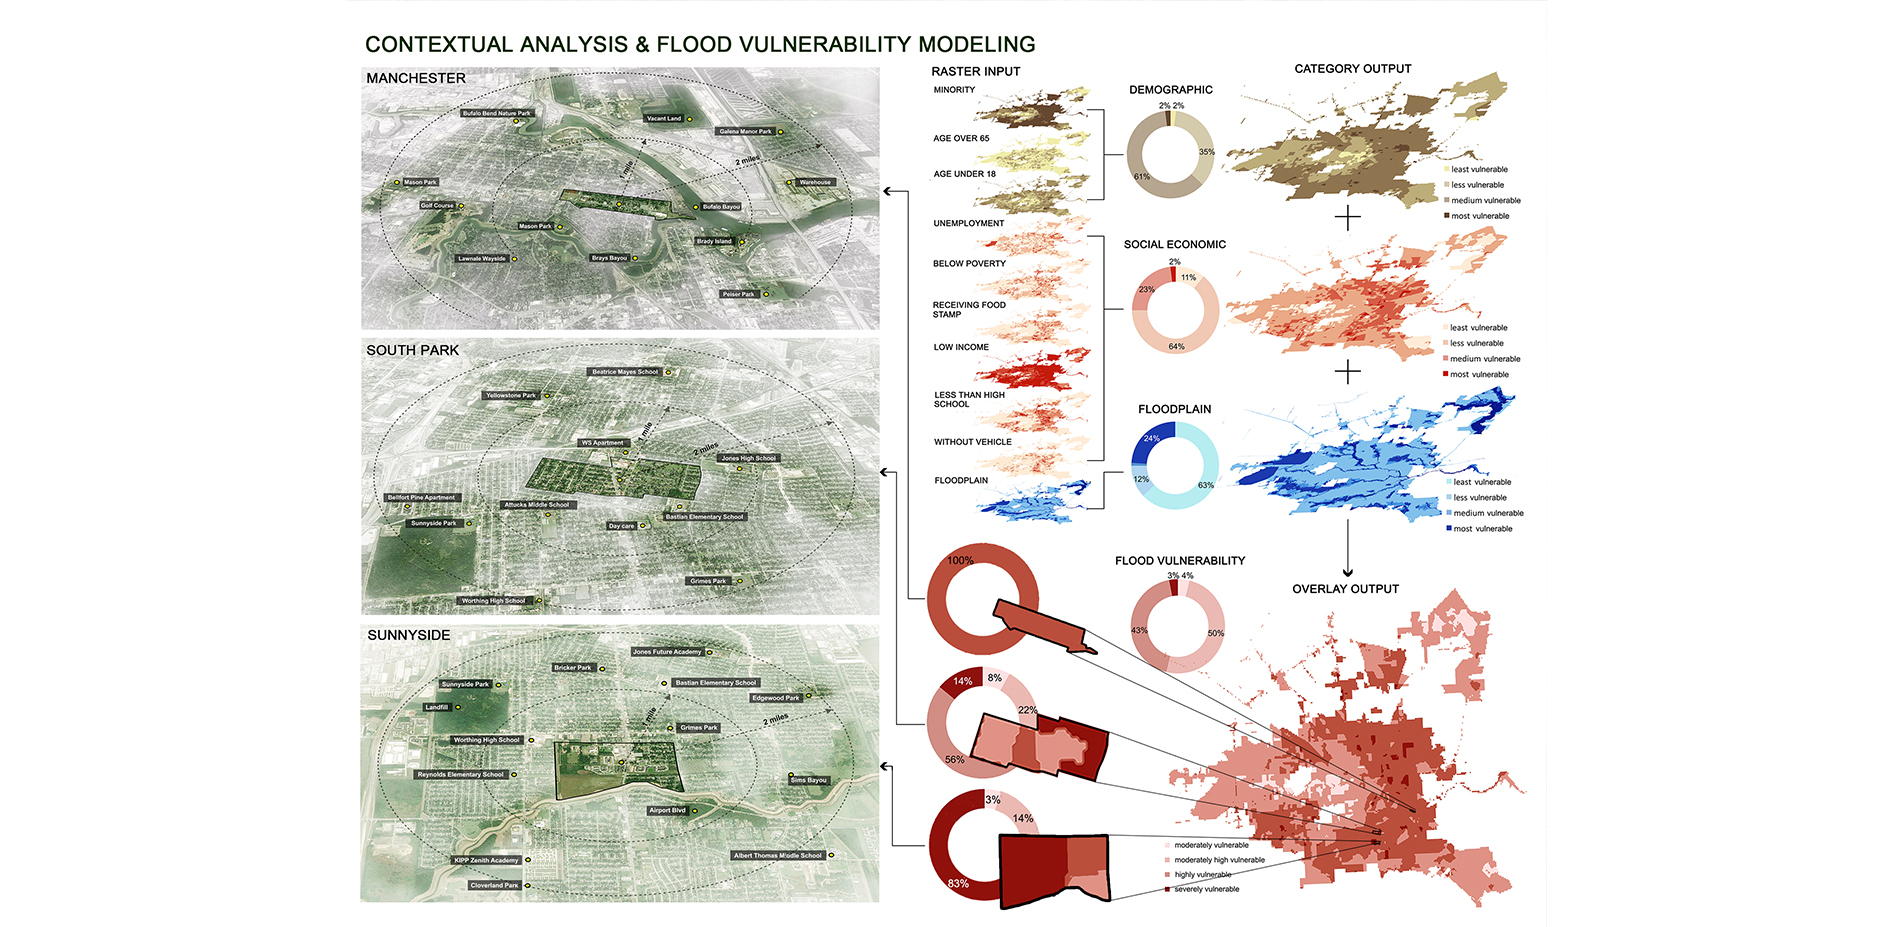 Contextual analysis & flood vulnerability modeling